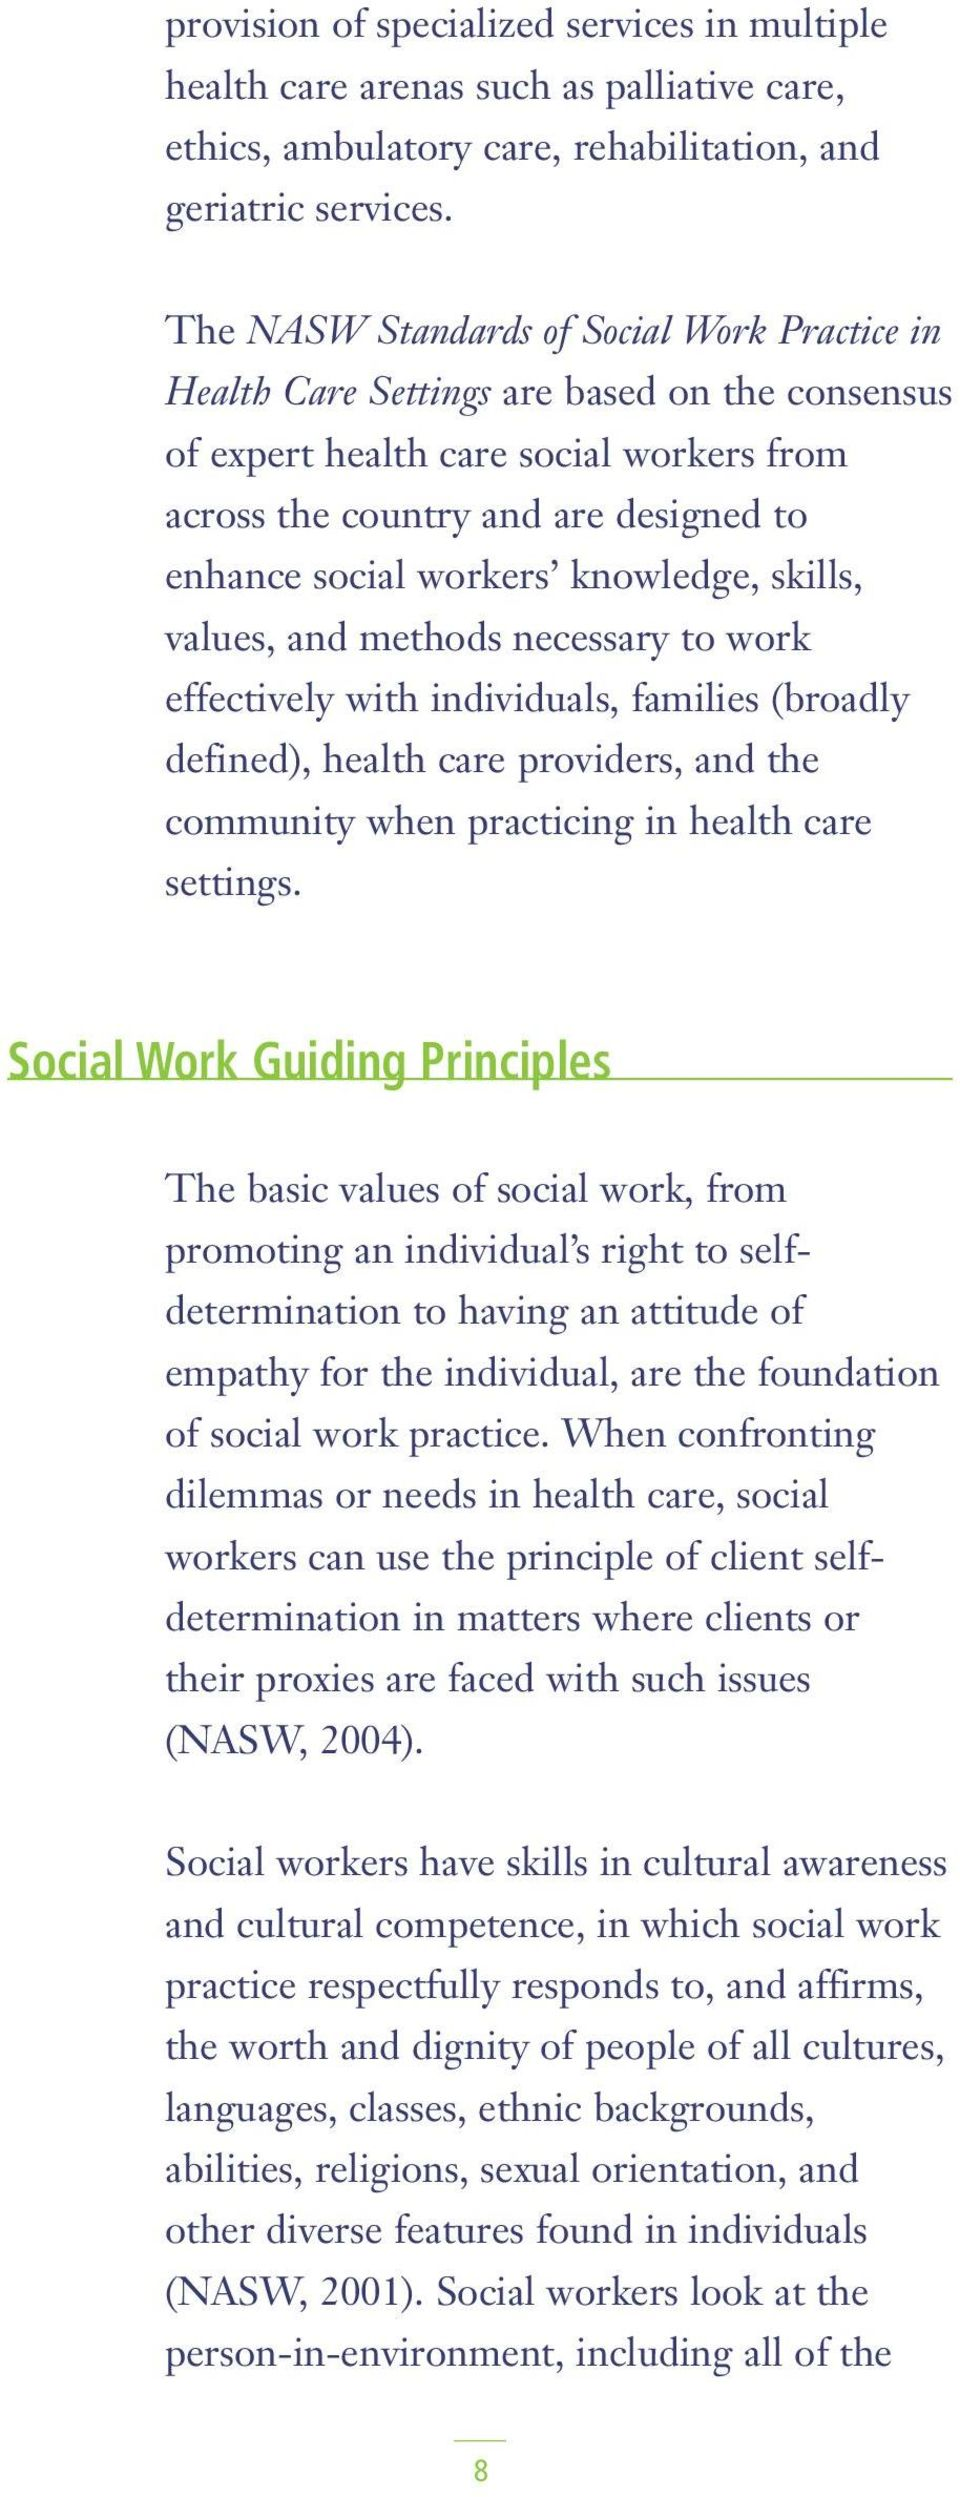 knowledge, skills, values, and methods necessary to work effectively with individuals, families (broadly defined), health care providers, and the community when practicing in health care settings.